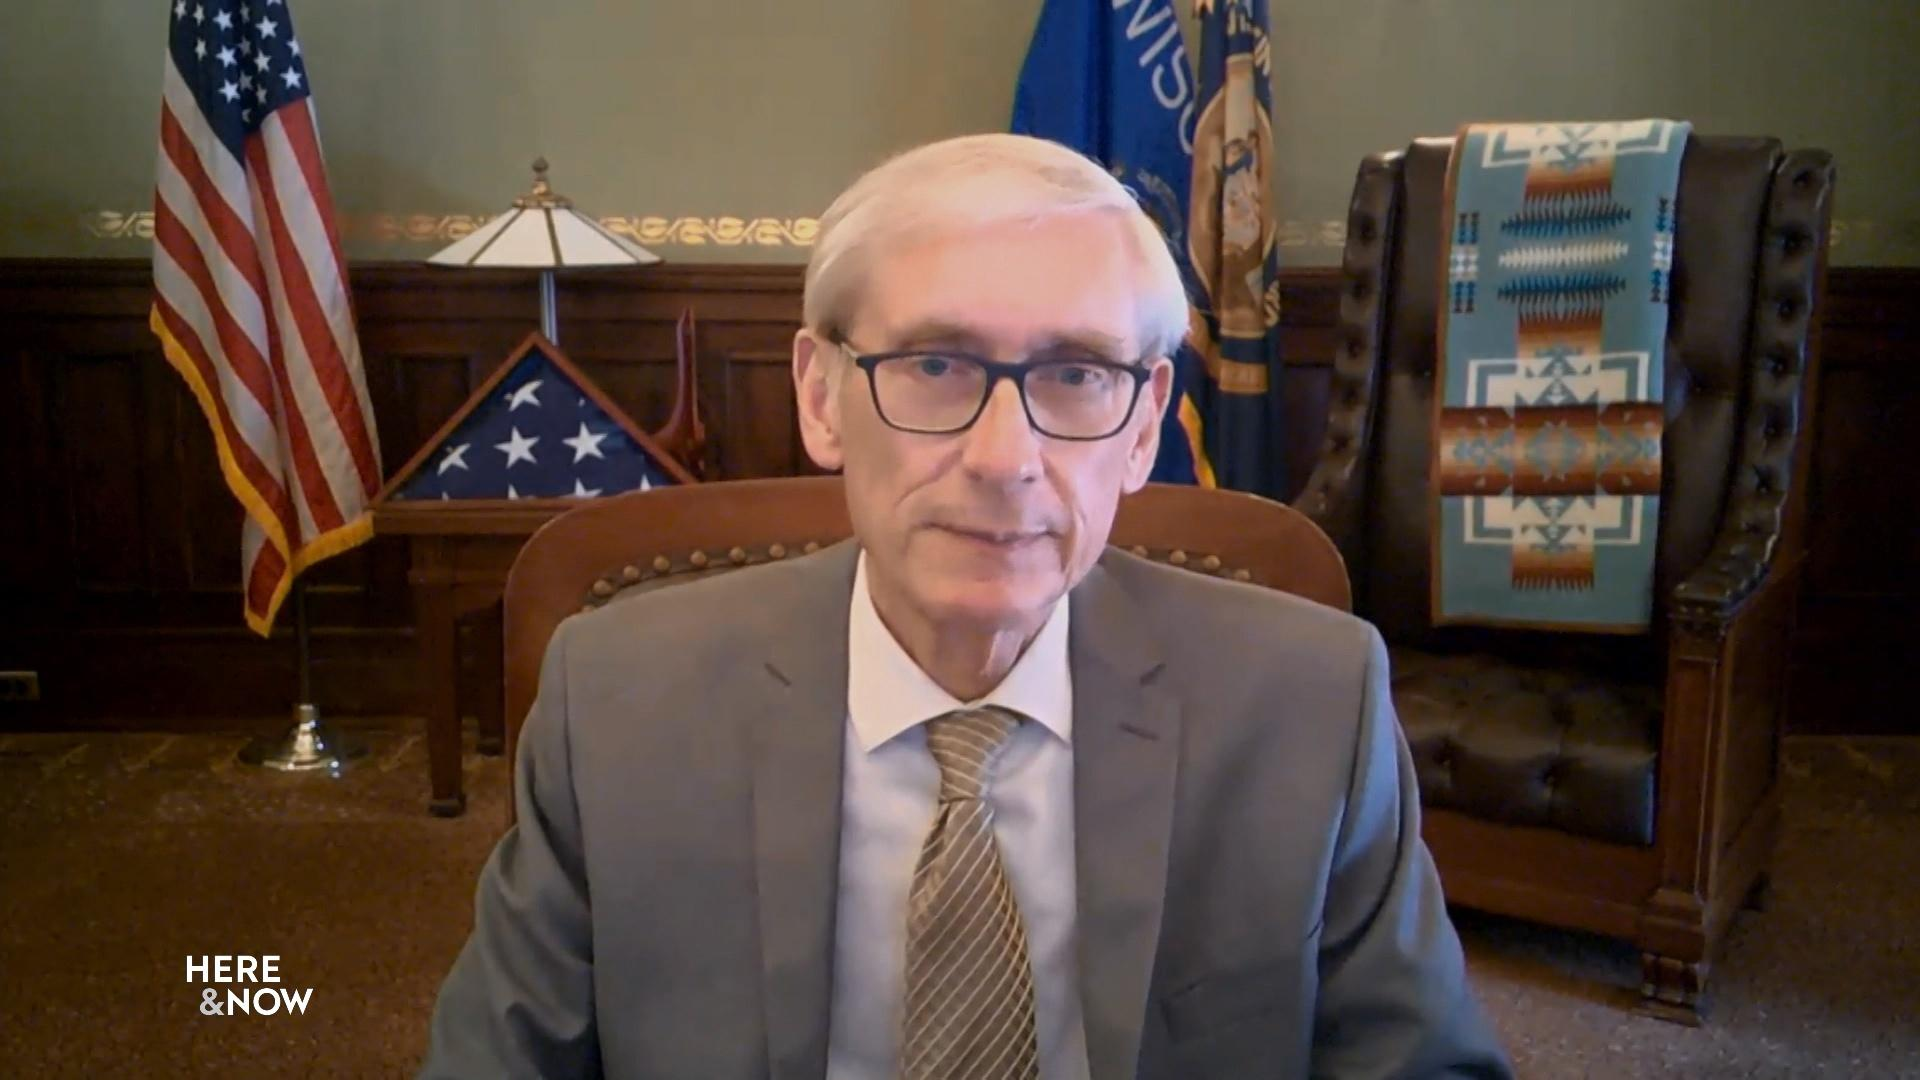 Evers Weighing Options While Awaiting Supreme Court Decision